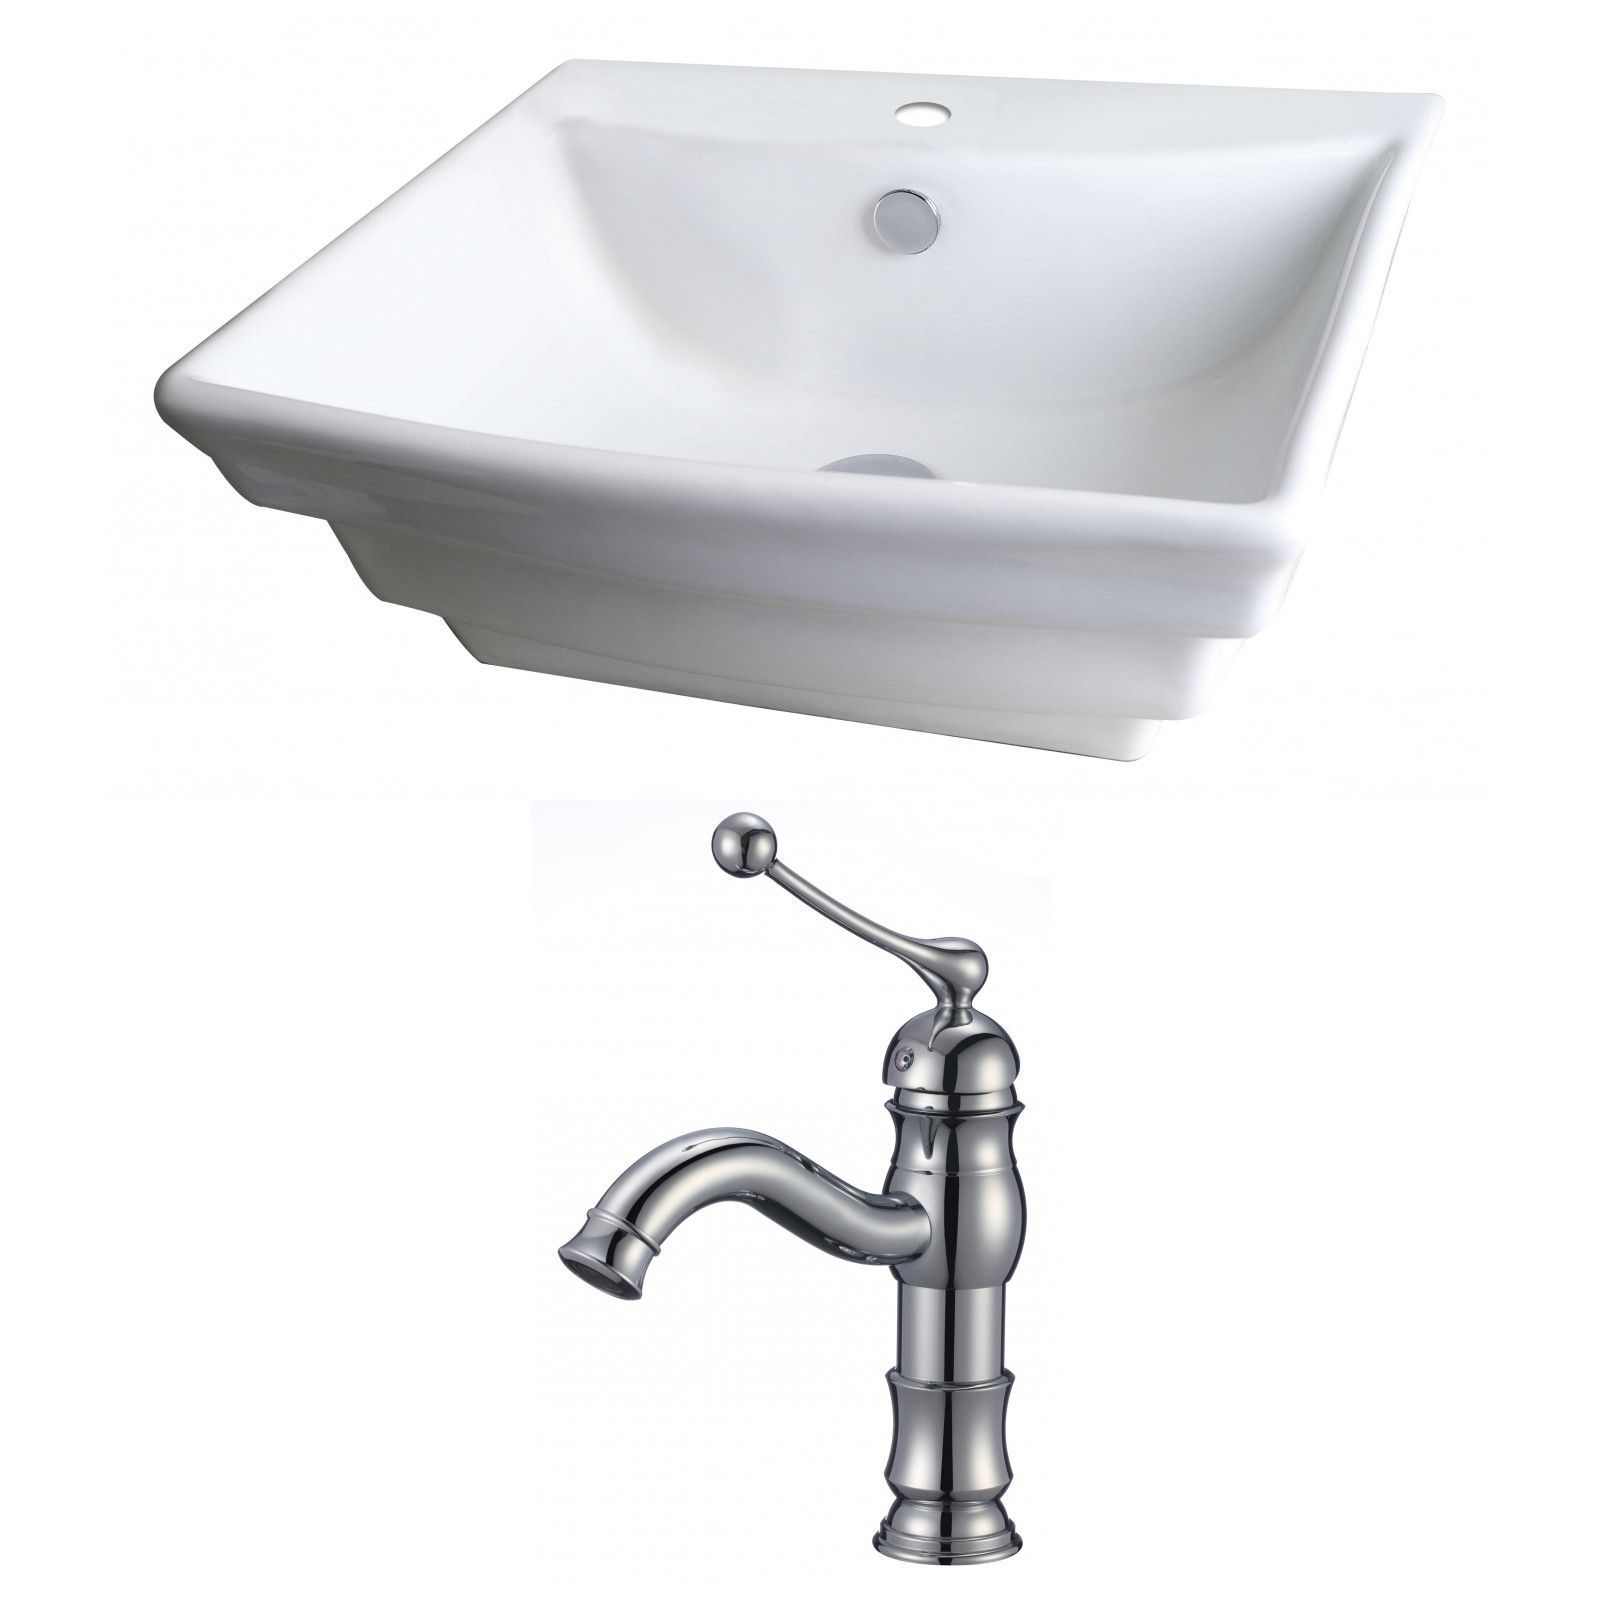 Undermount Bathroom Sink With Faucet Holes - All About ...